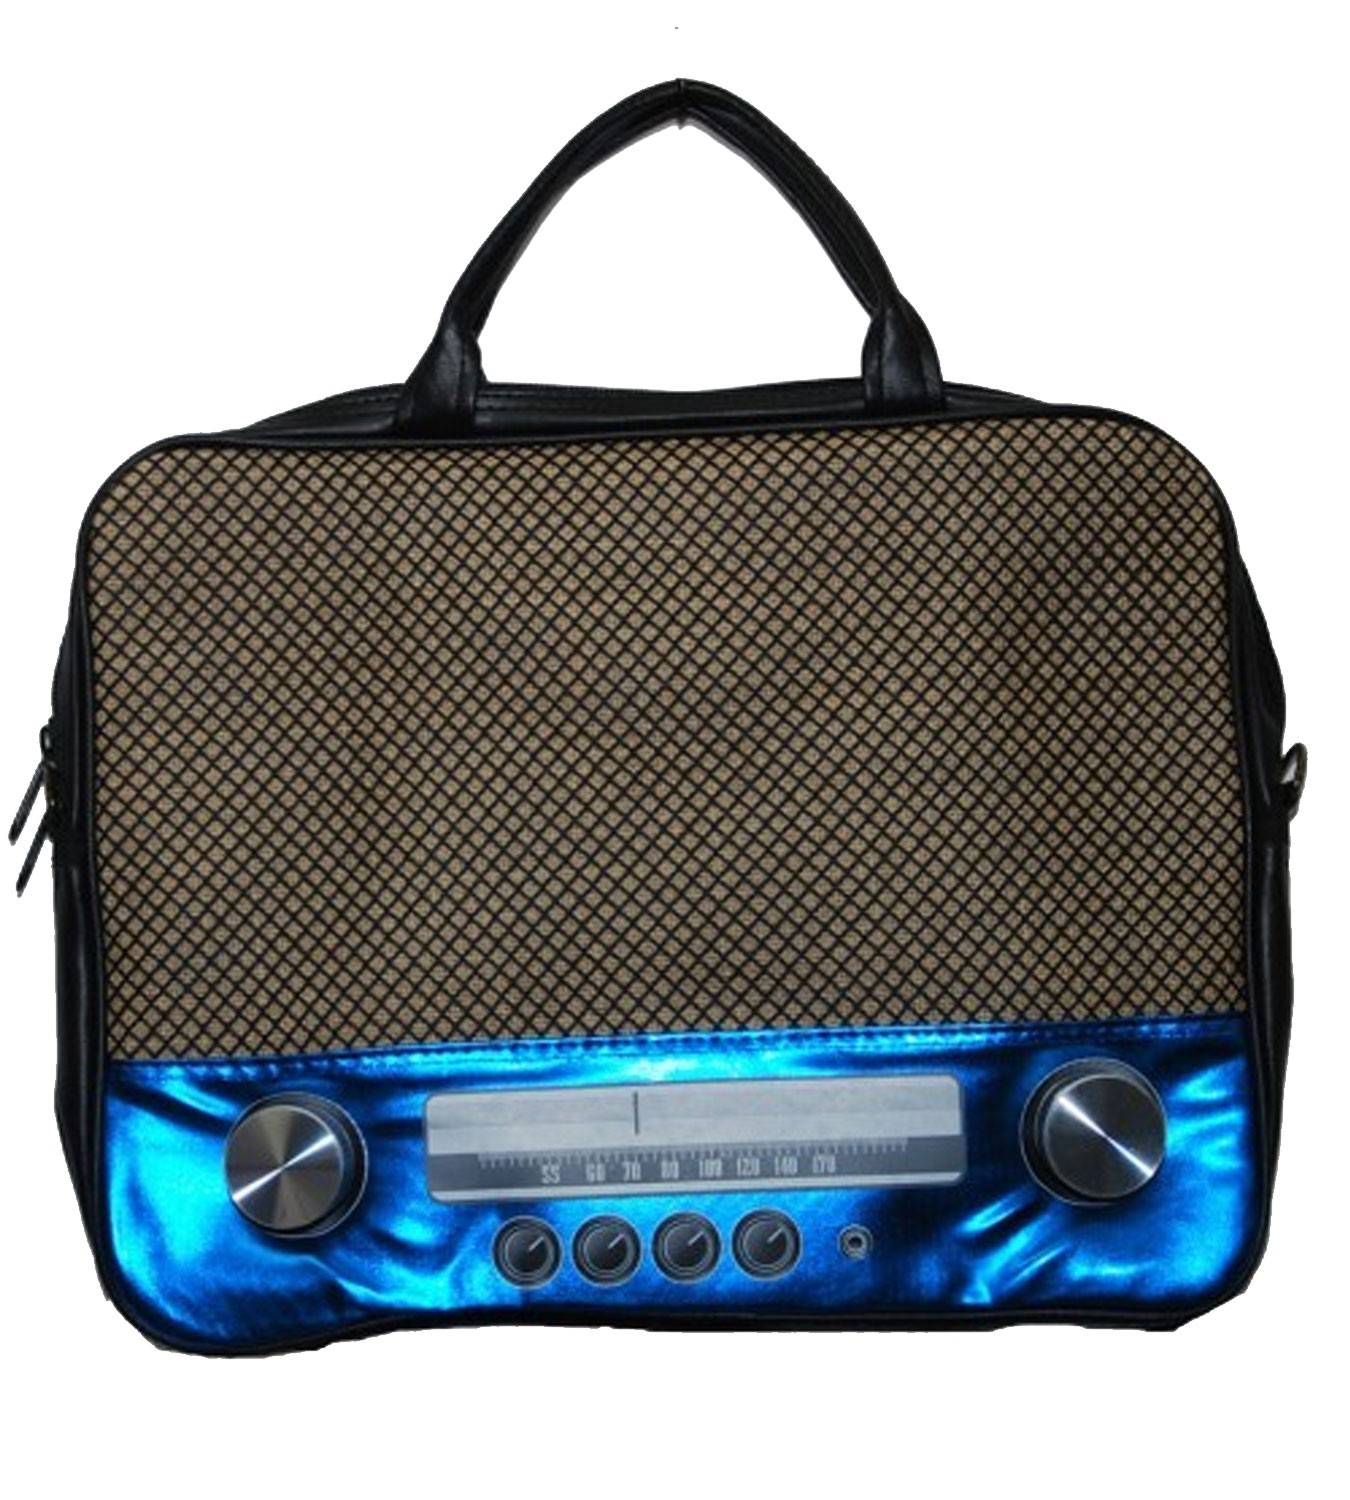 kult 70er retro radio bag notebooktasche im retro style 39 6cm 15 ebay. Black Bedroom Furniture Sets. Home Design Ideas